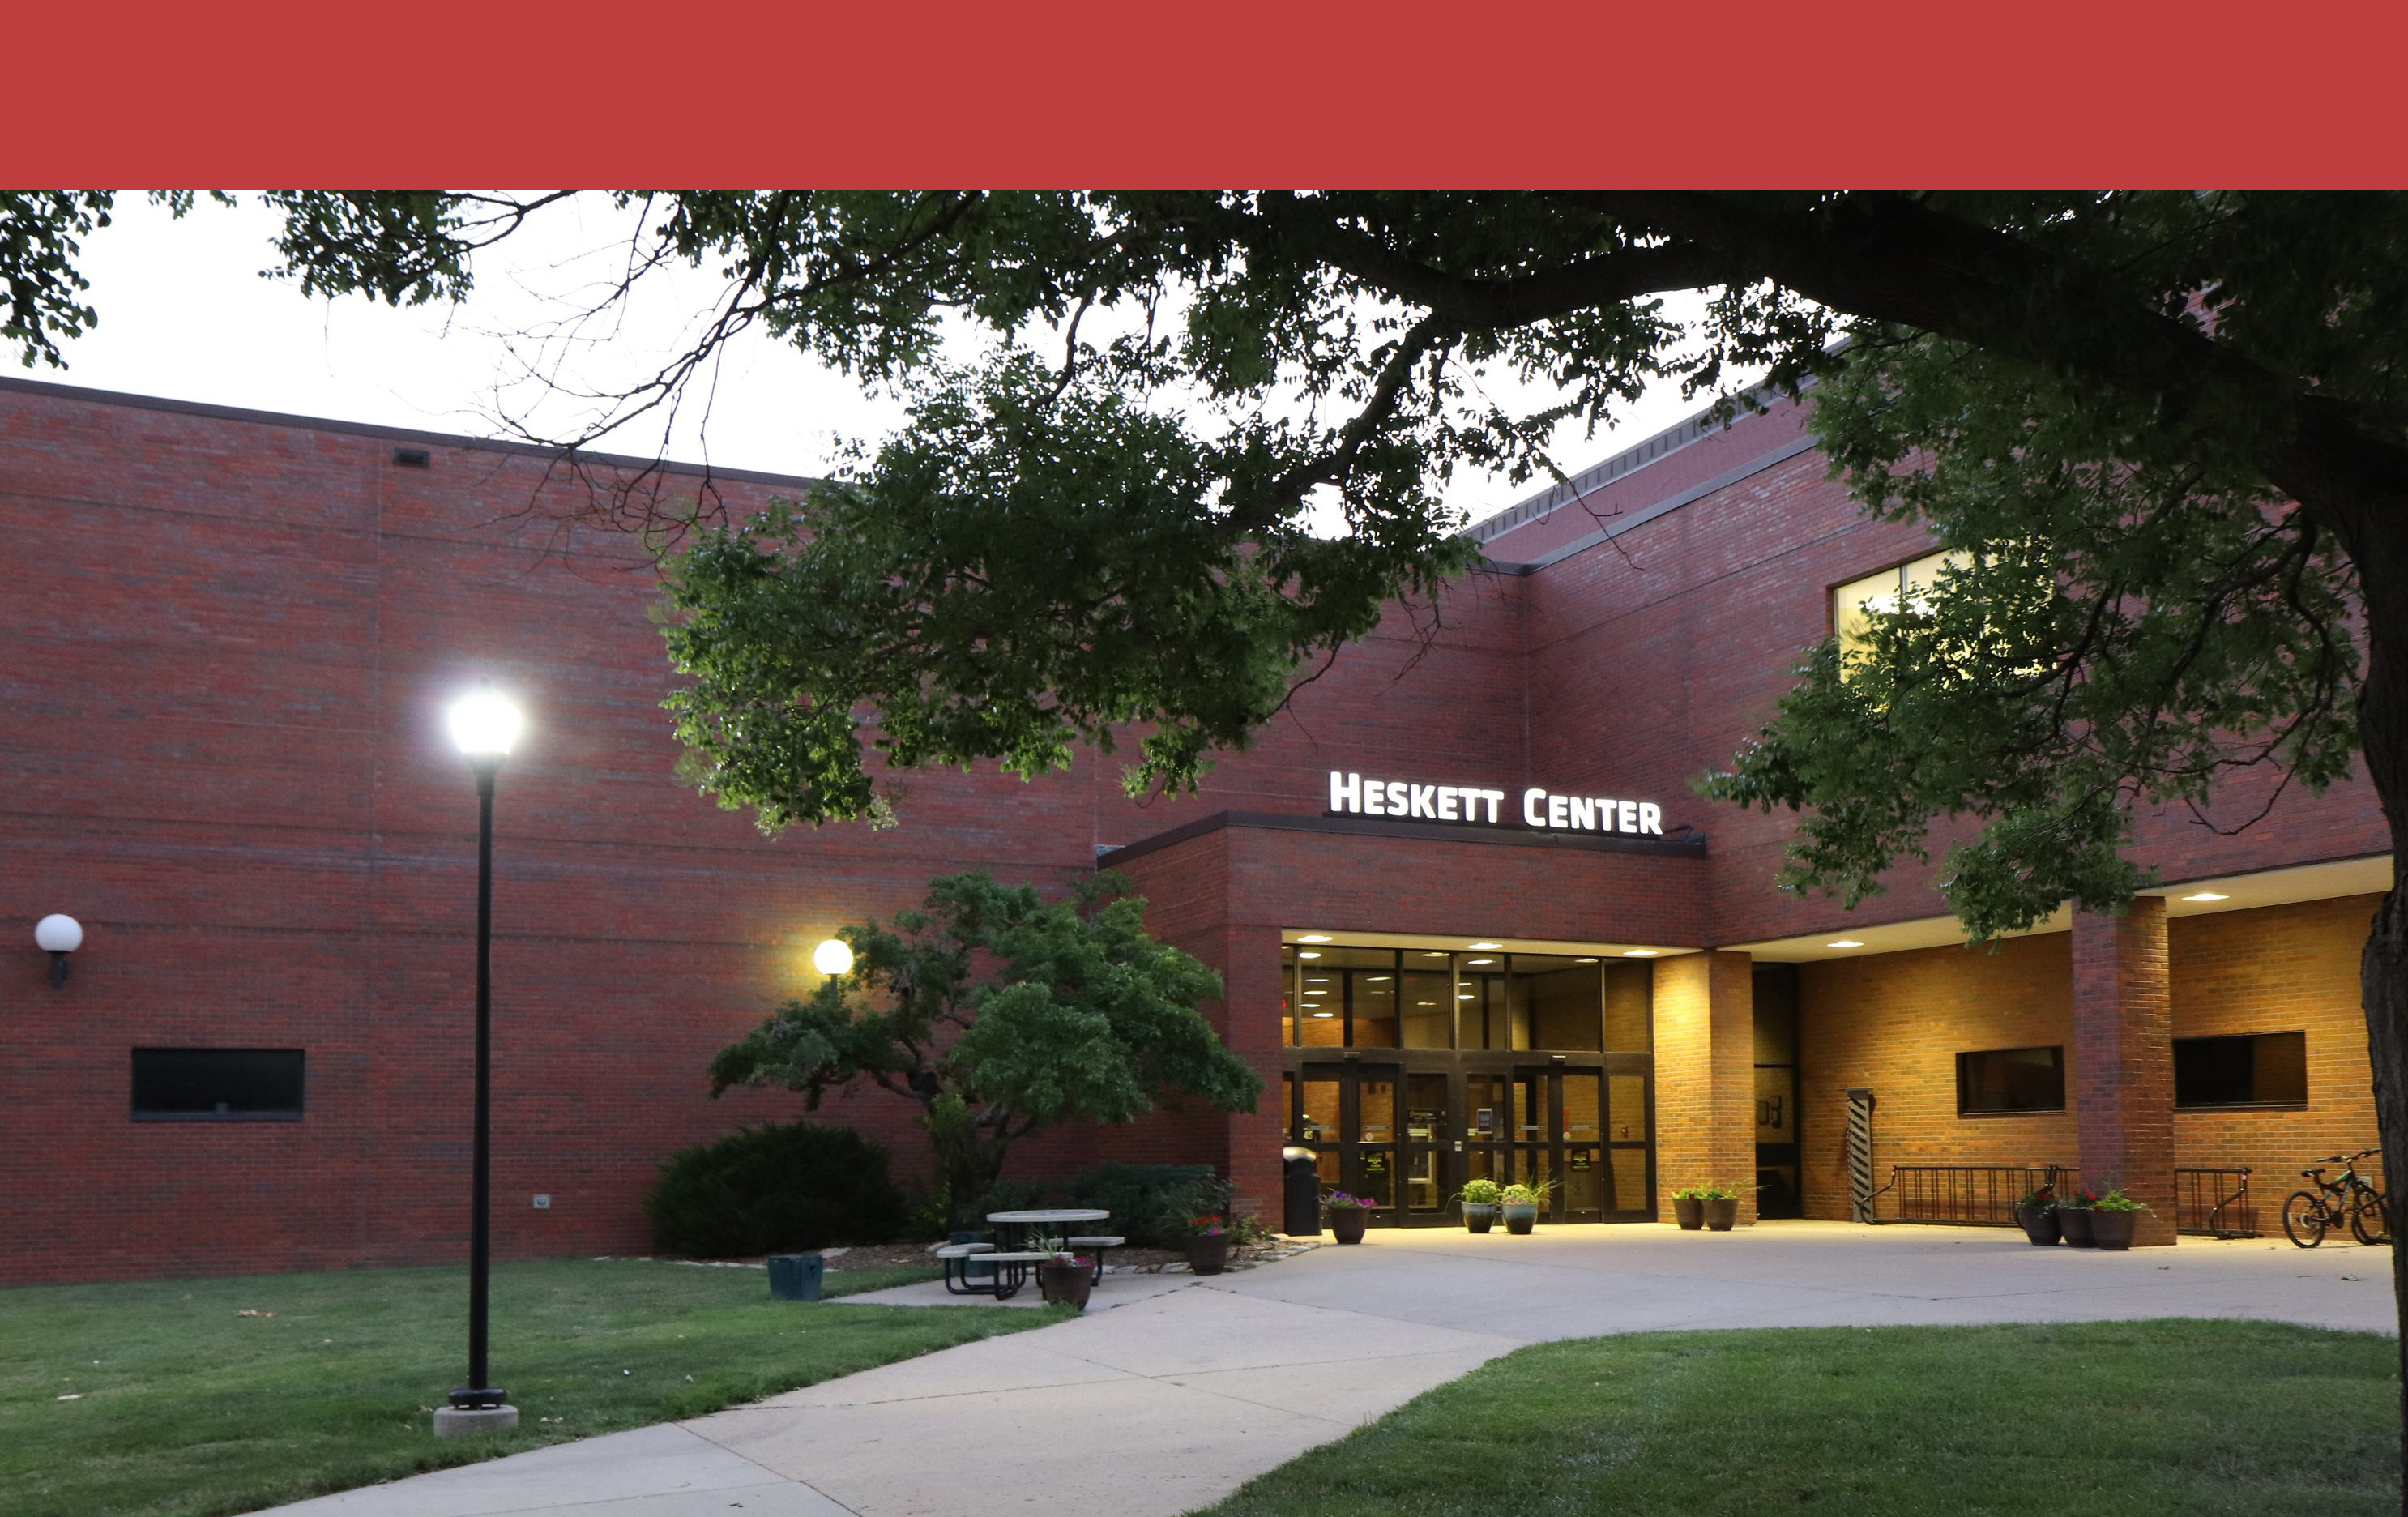 View of the Heskett Center from the outside. The sign above the door is lit up, as is the lamp post in the left of the image.